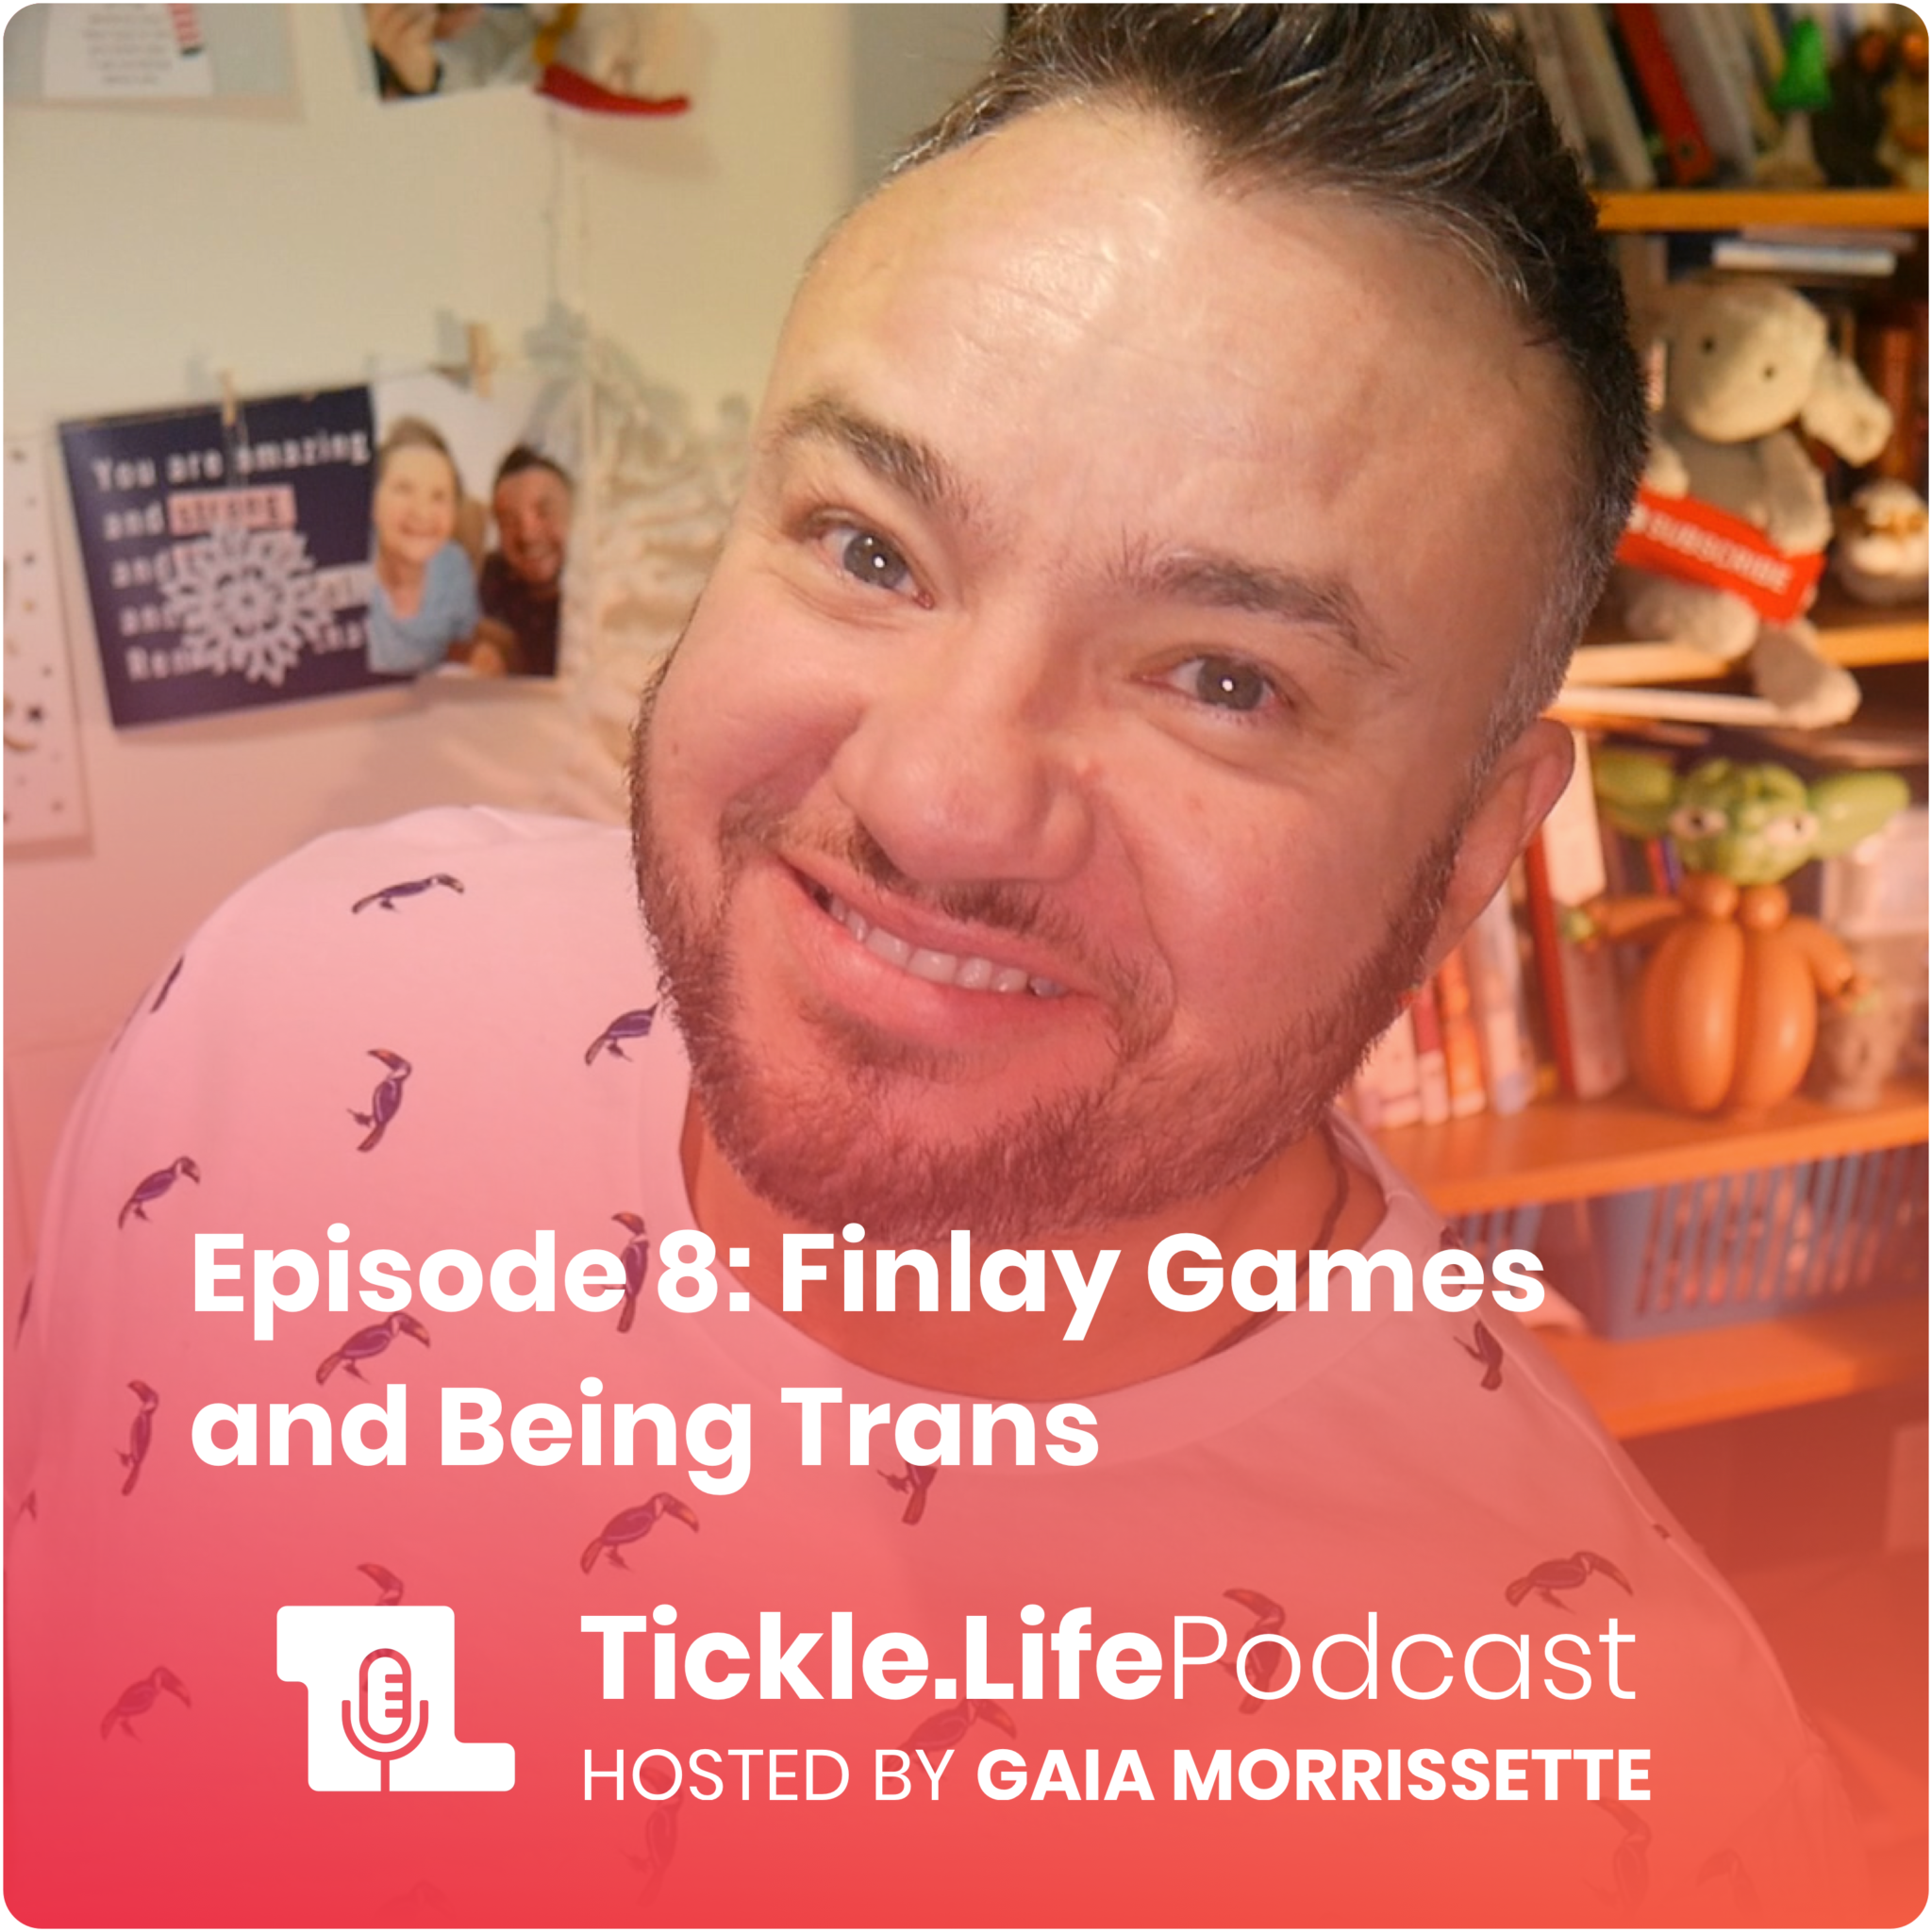 Tickle.Life Podcast - Finlay Games and Being Trans